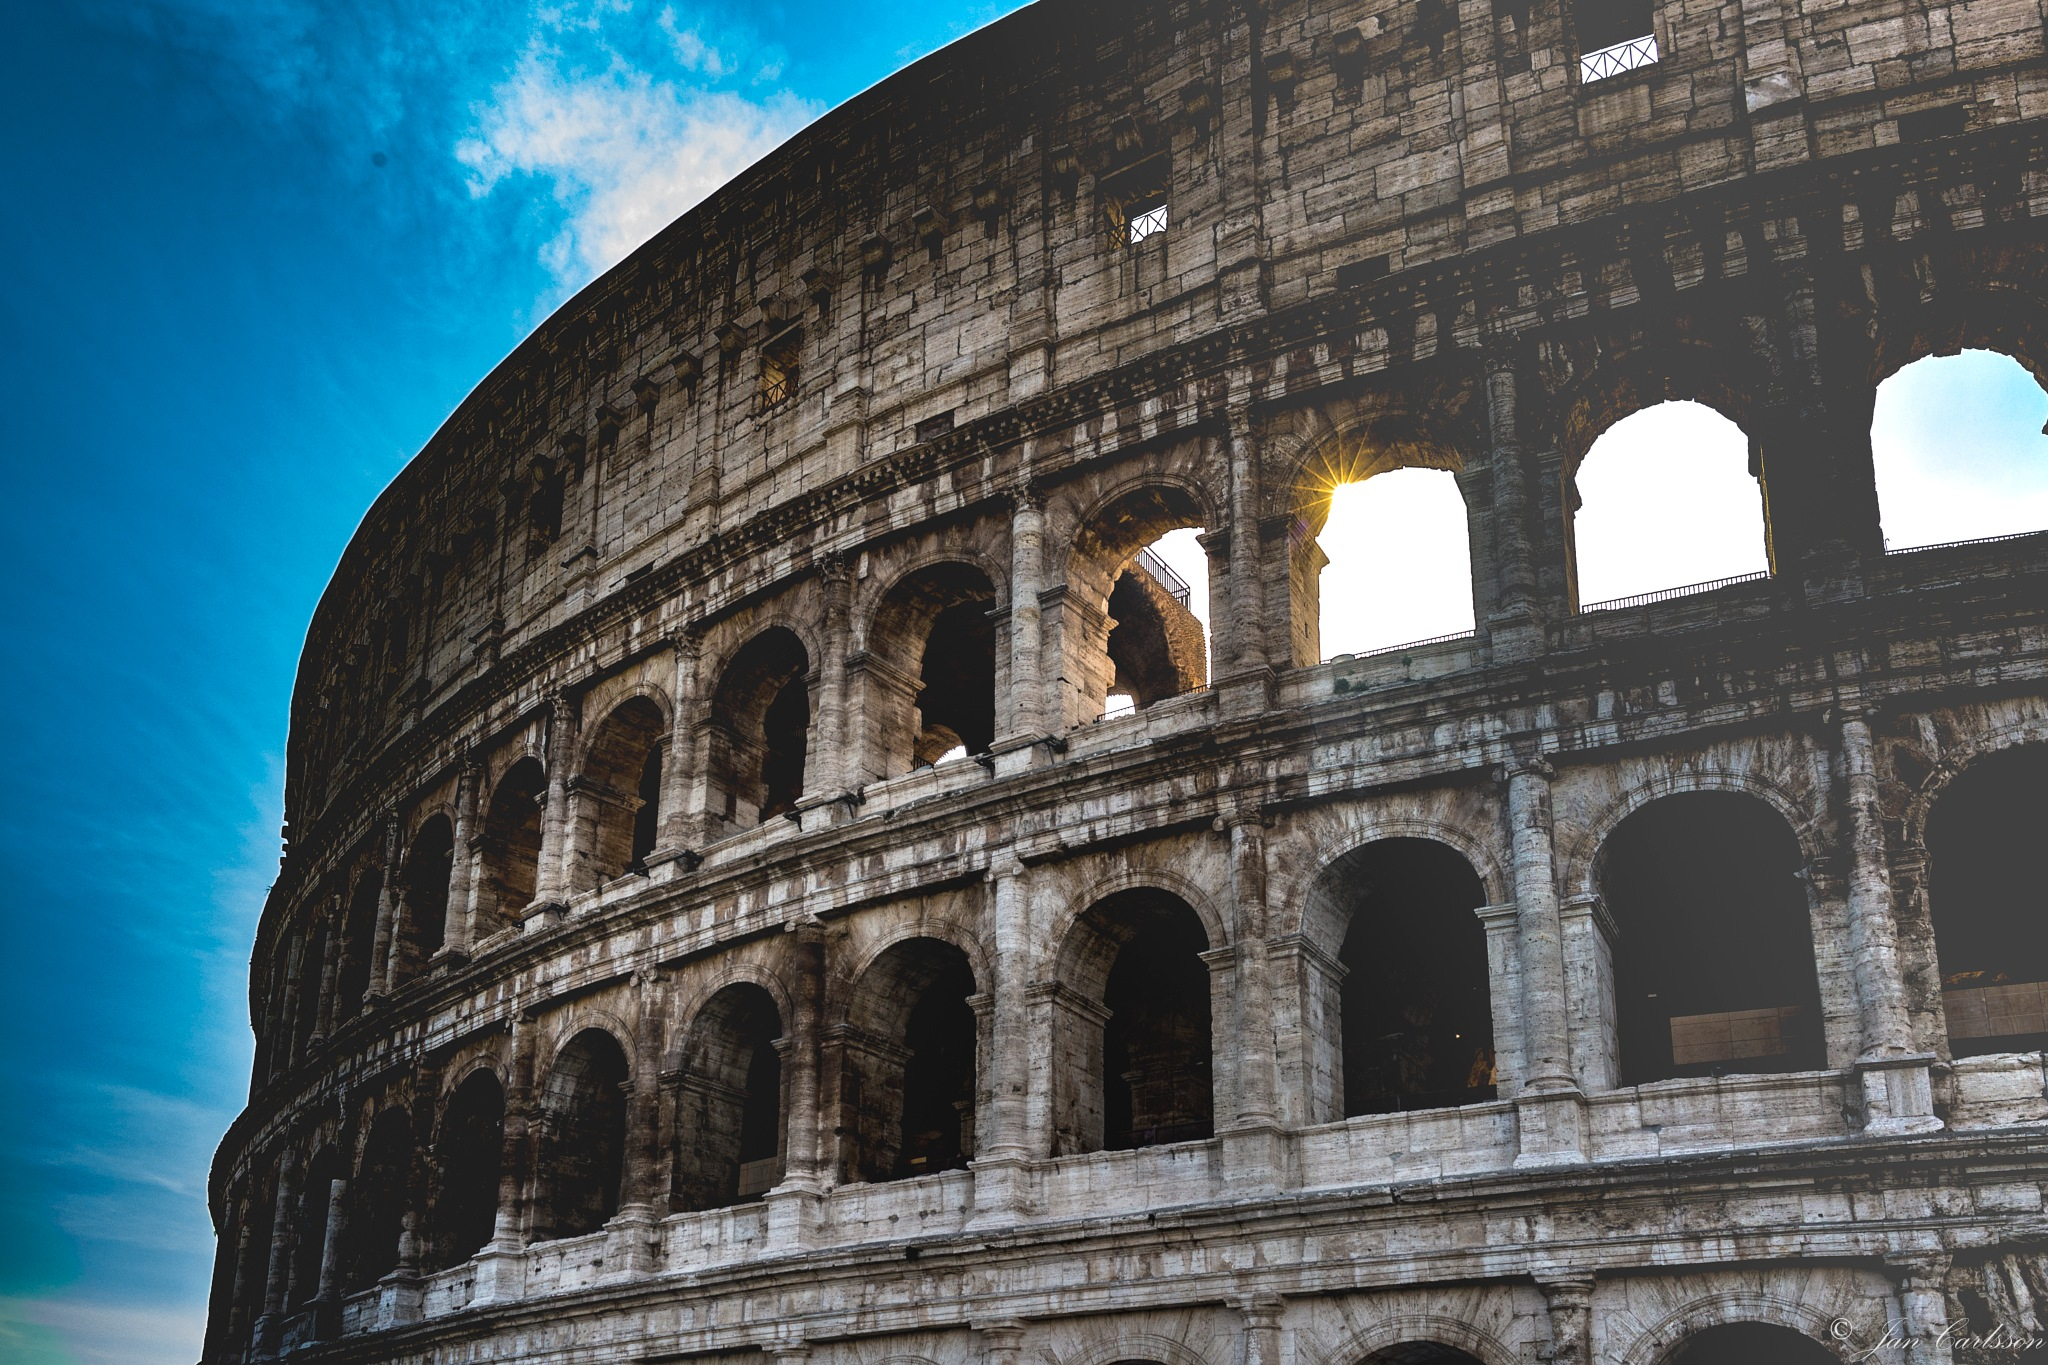 Colosseum by carljan w carlsson